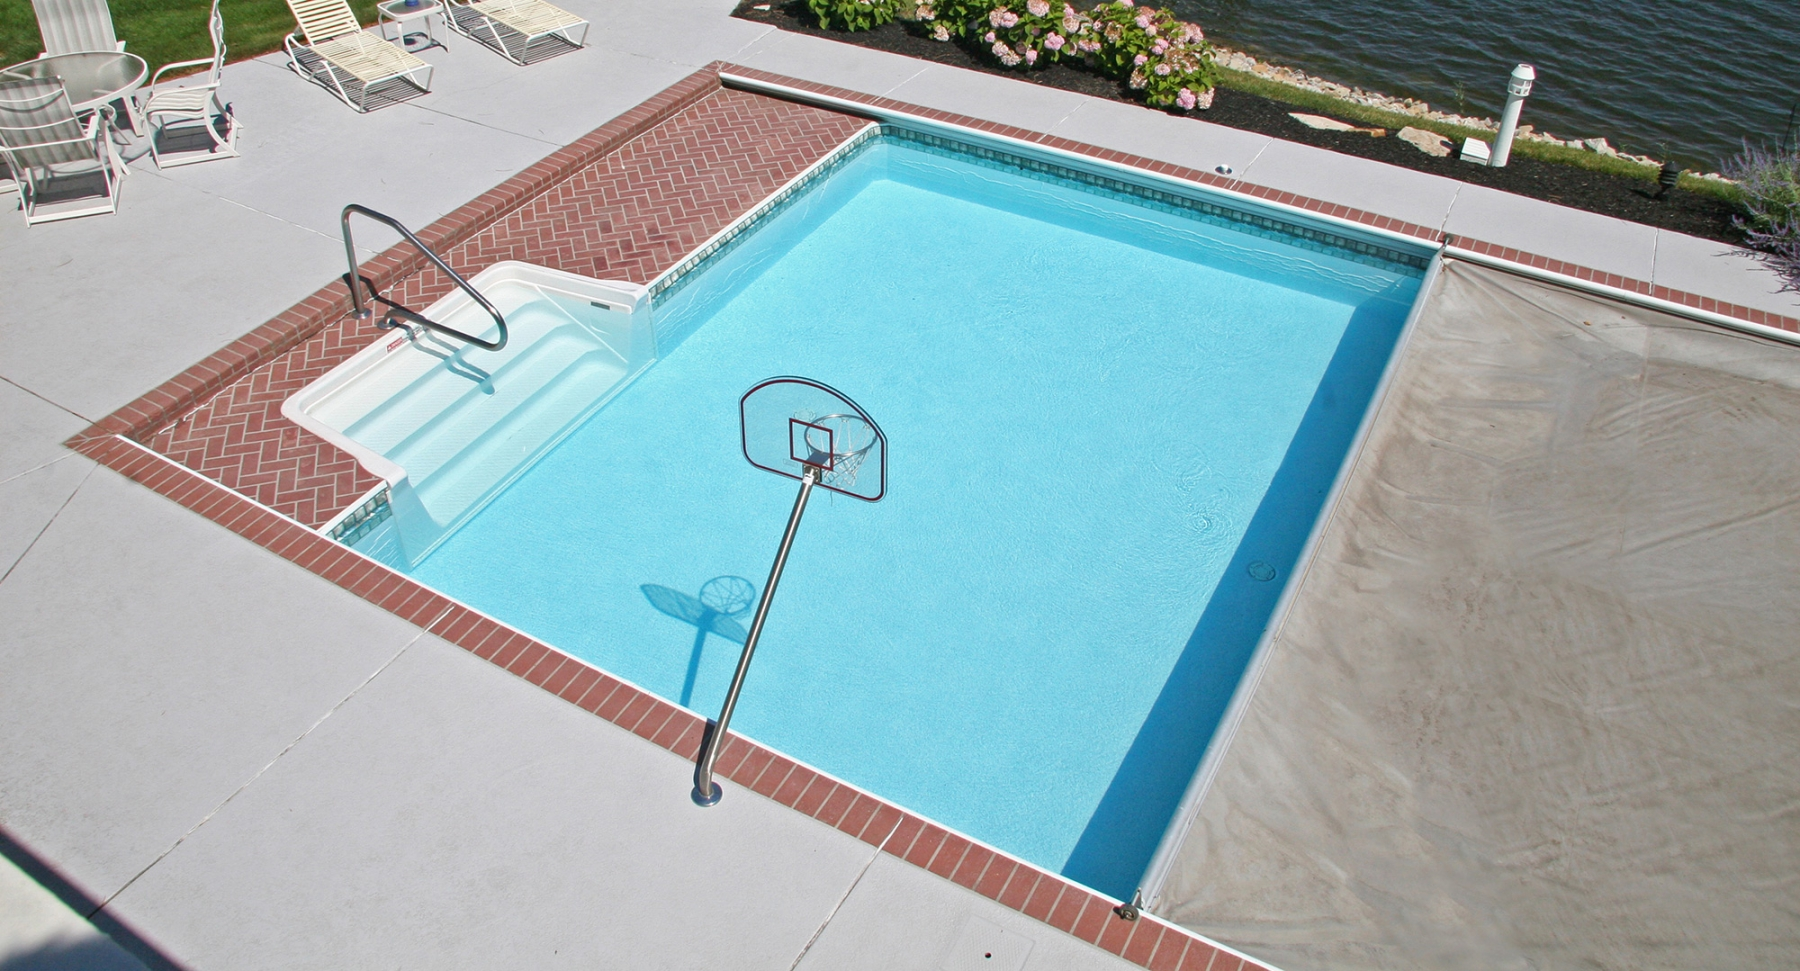 Automatic Pool Covers - What You Need to Know Before Buying